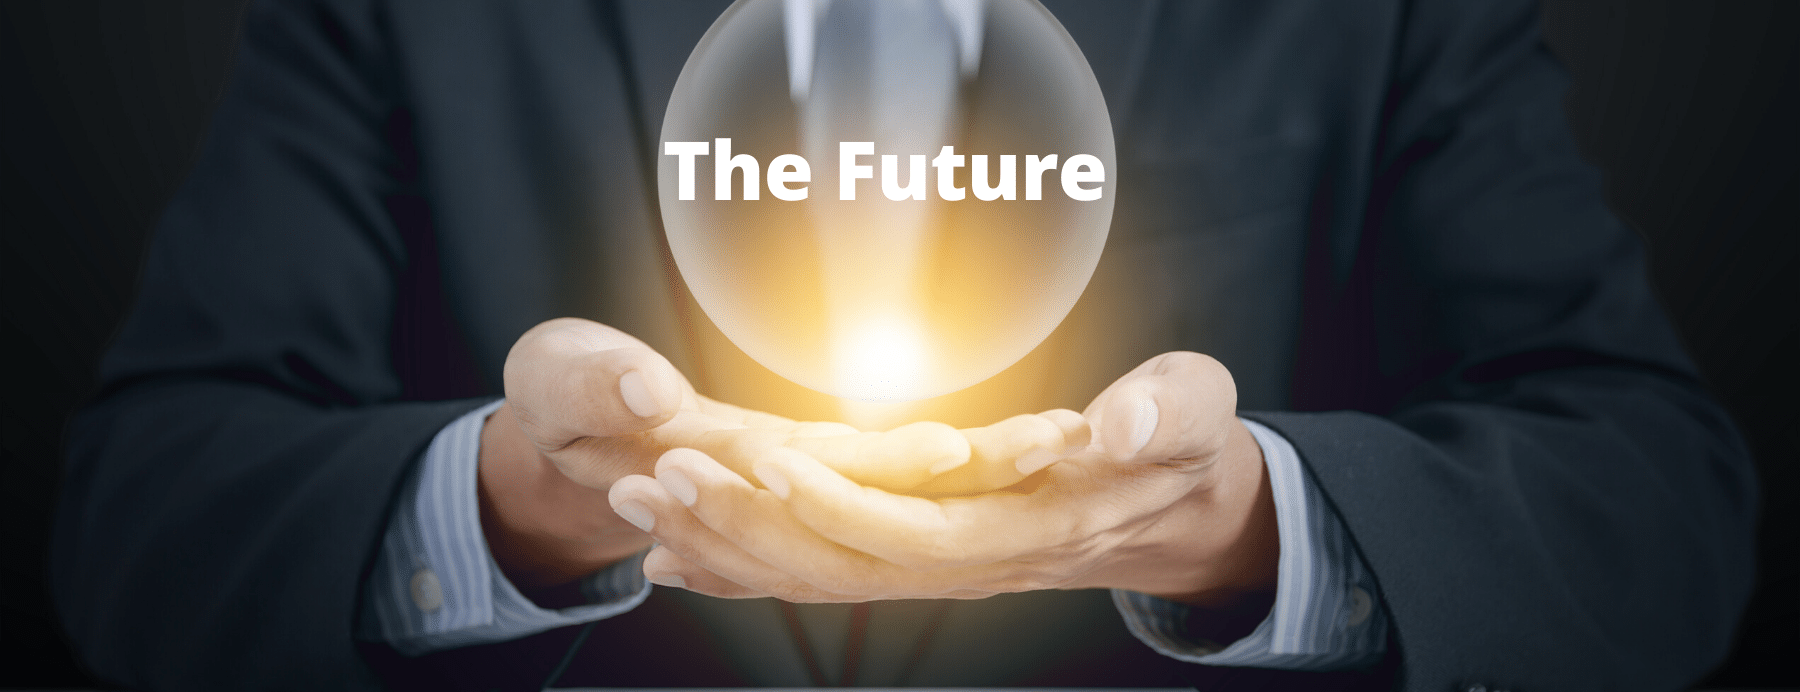 Tell the Future with a Crystal Ball